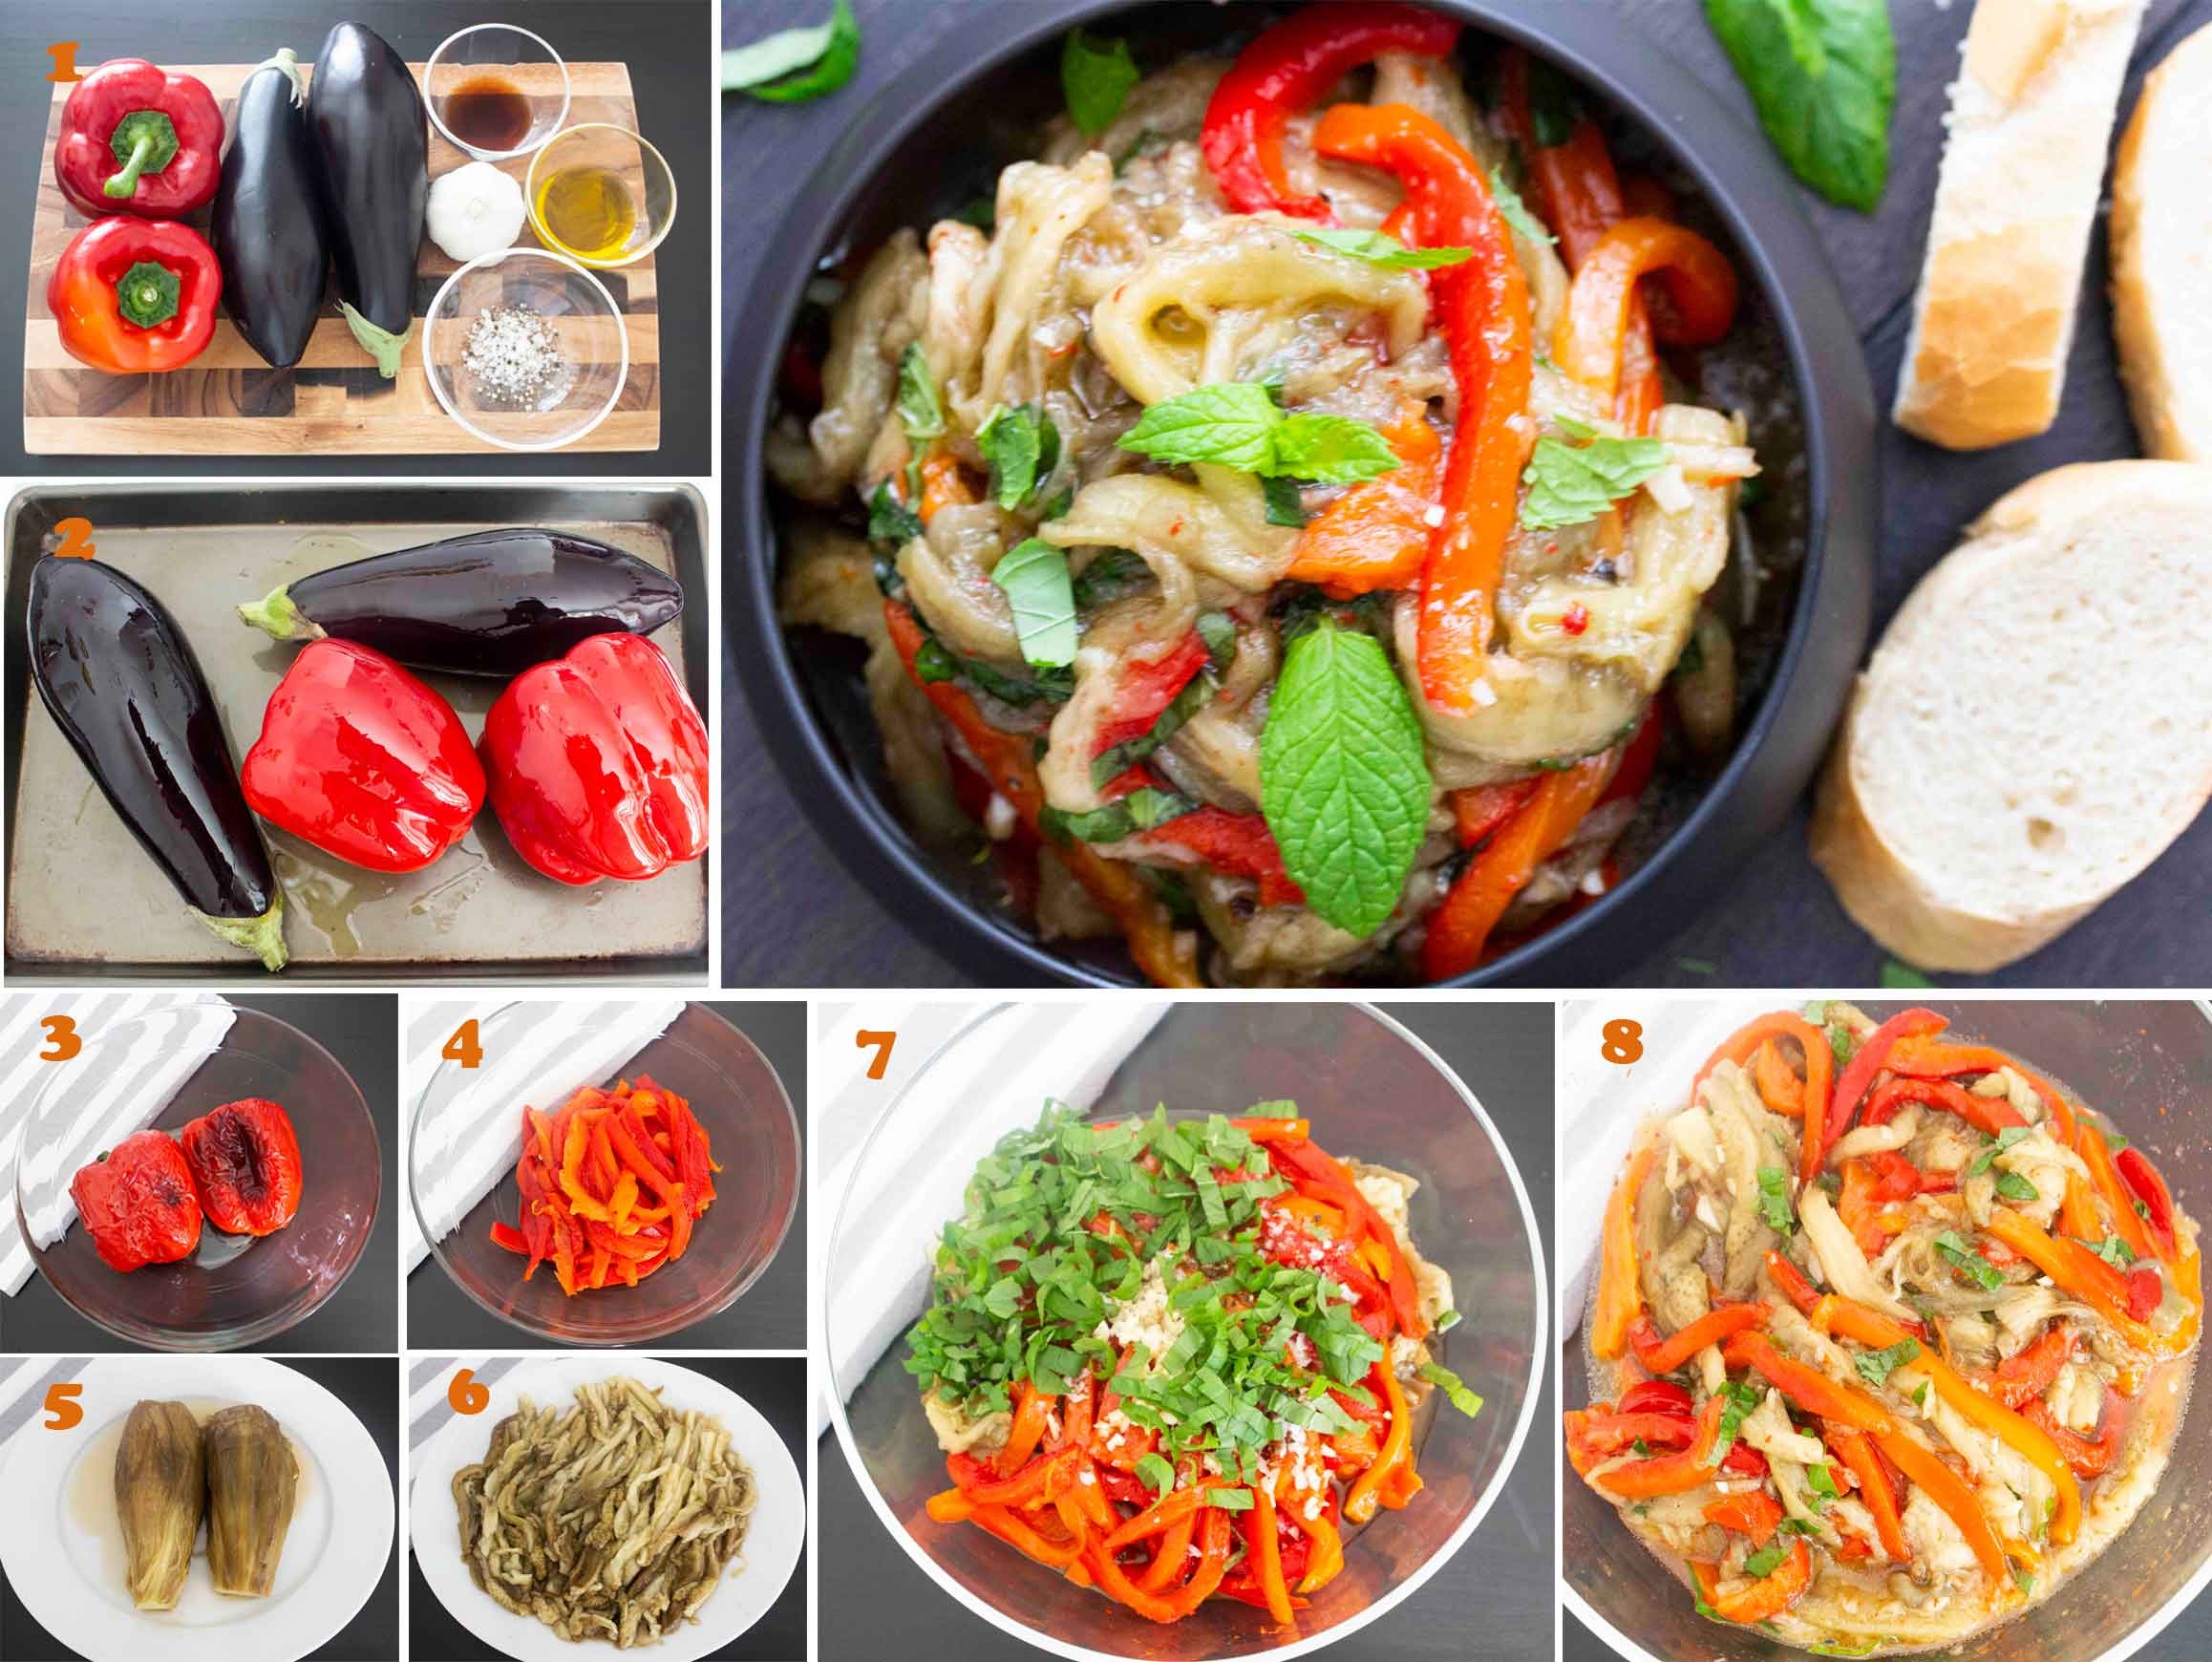 A collage of images showing the step by step process of making Spanish Marinated Eggplant & Peppers